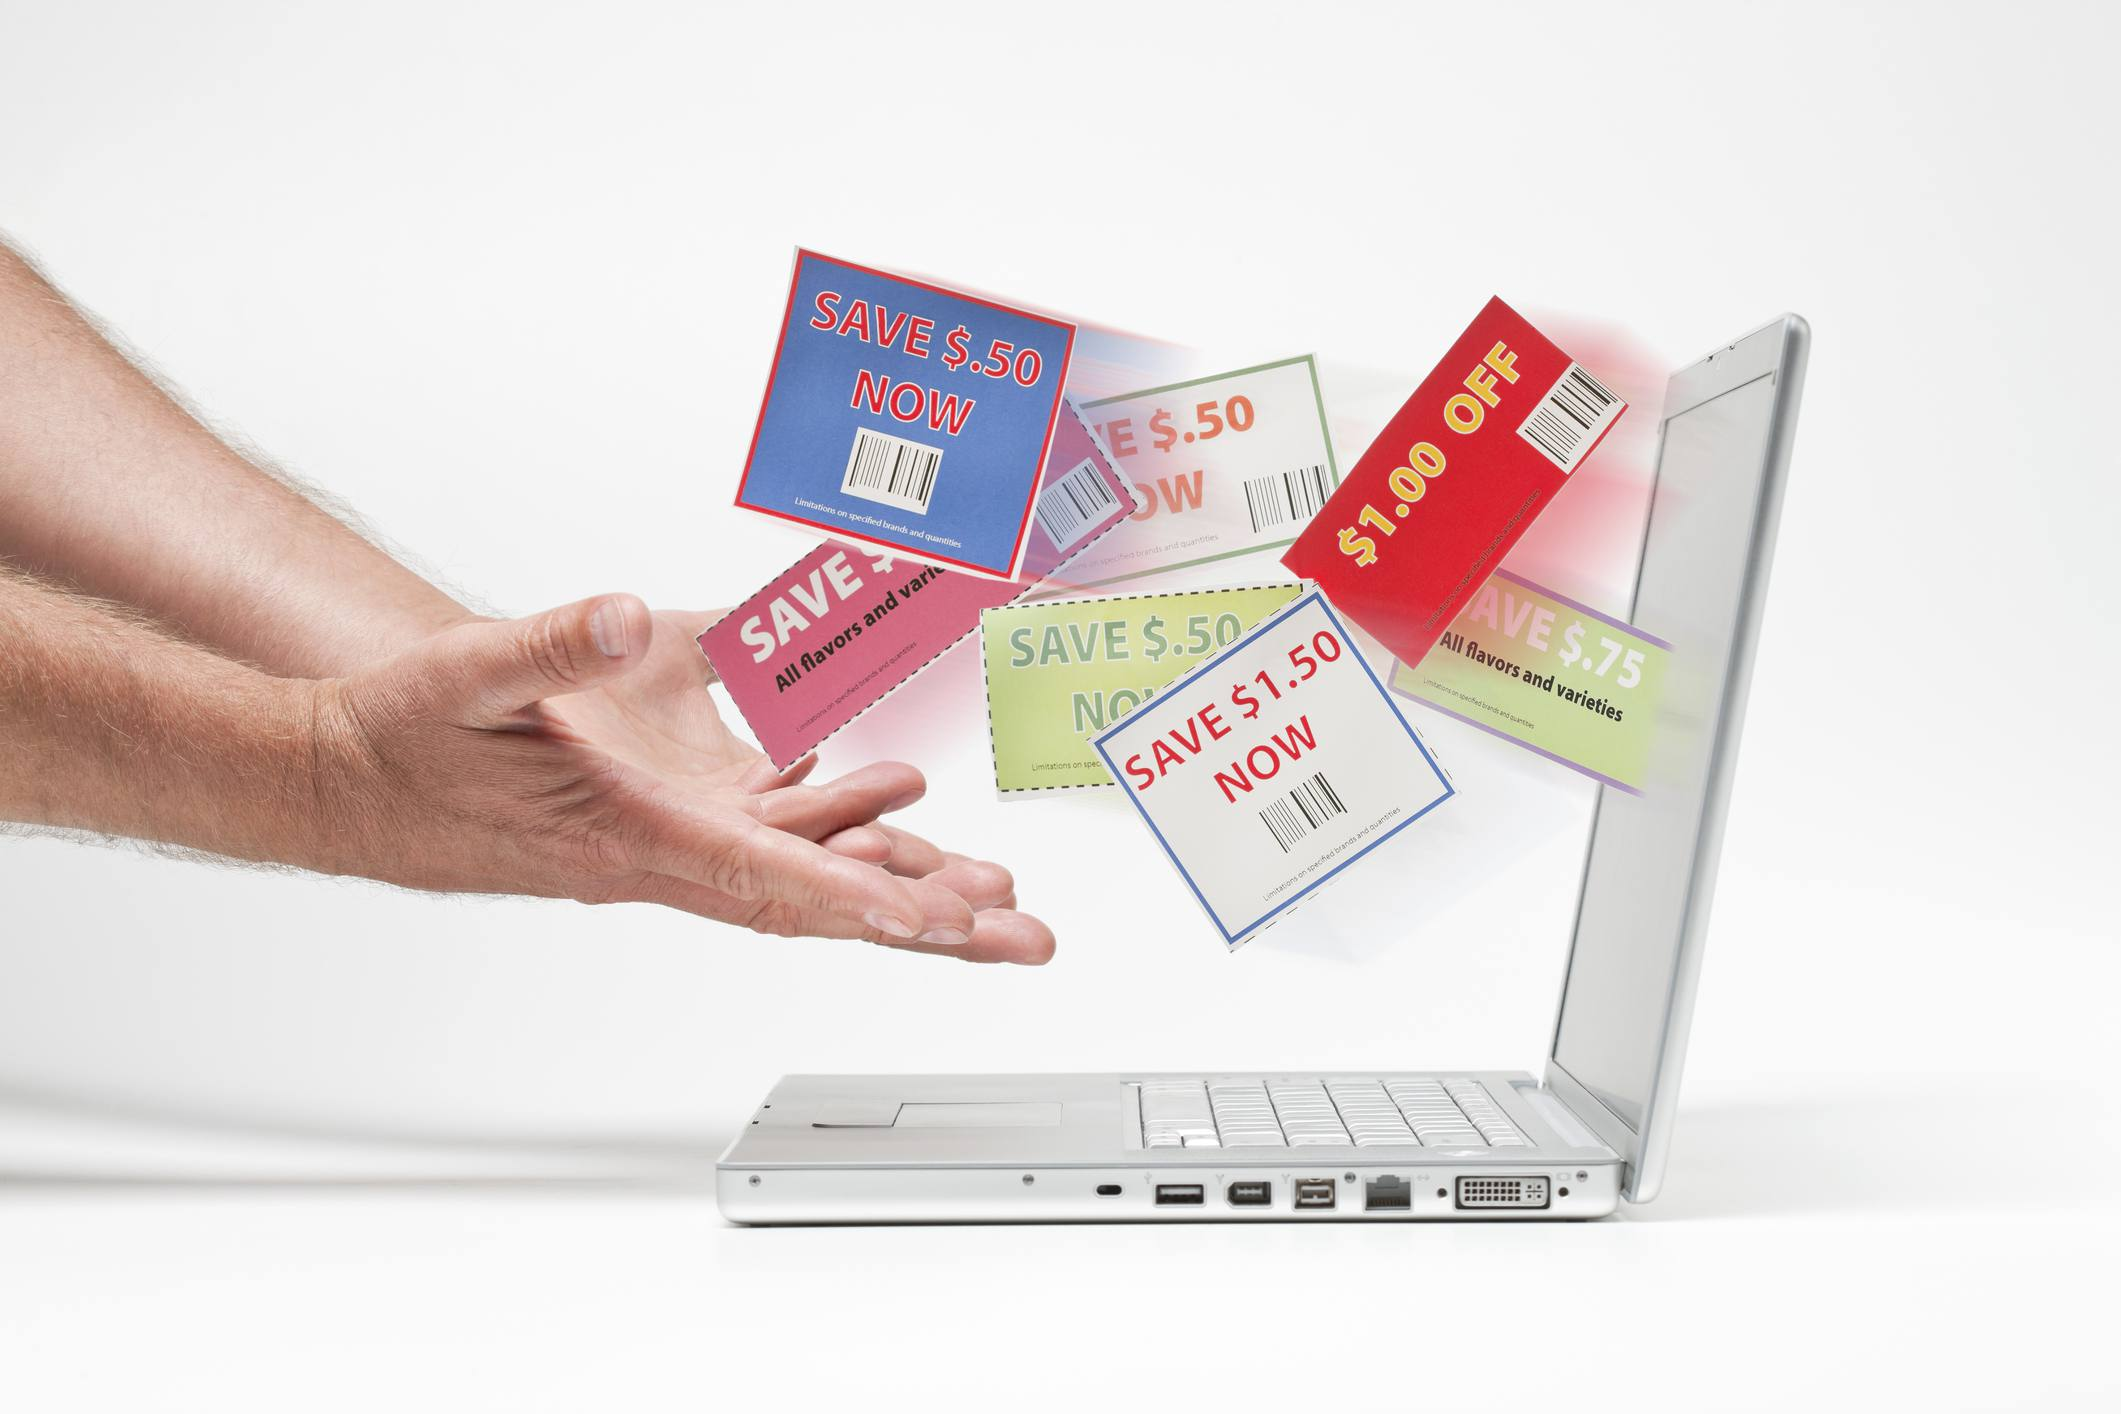 coupons coming out of laptop screen into man's hands